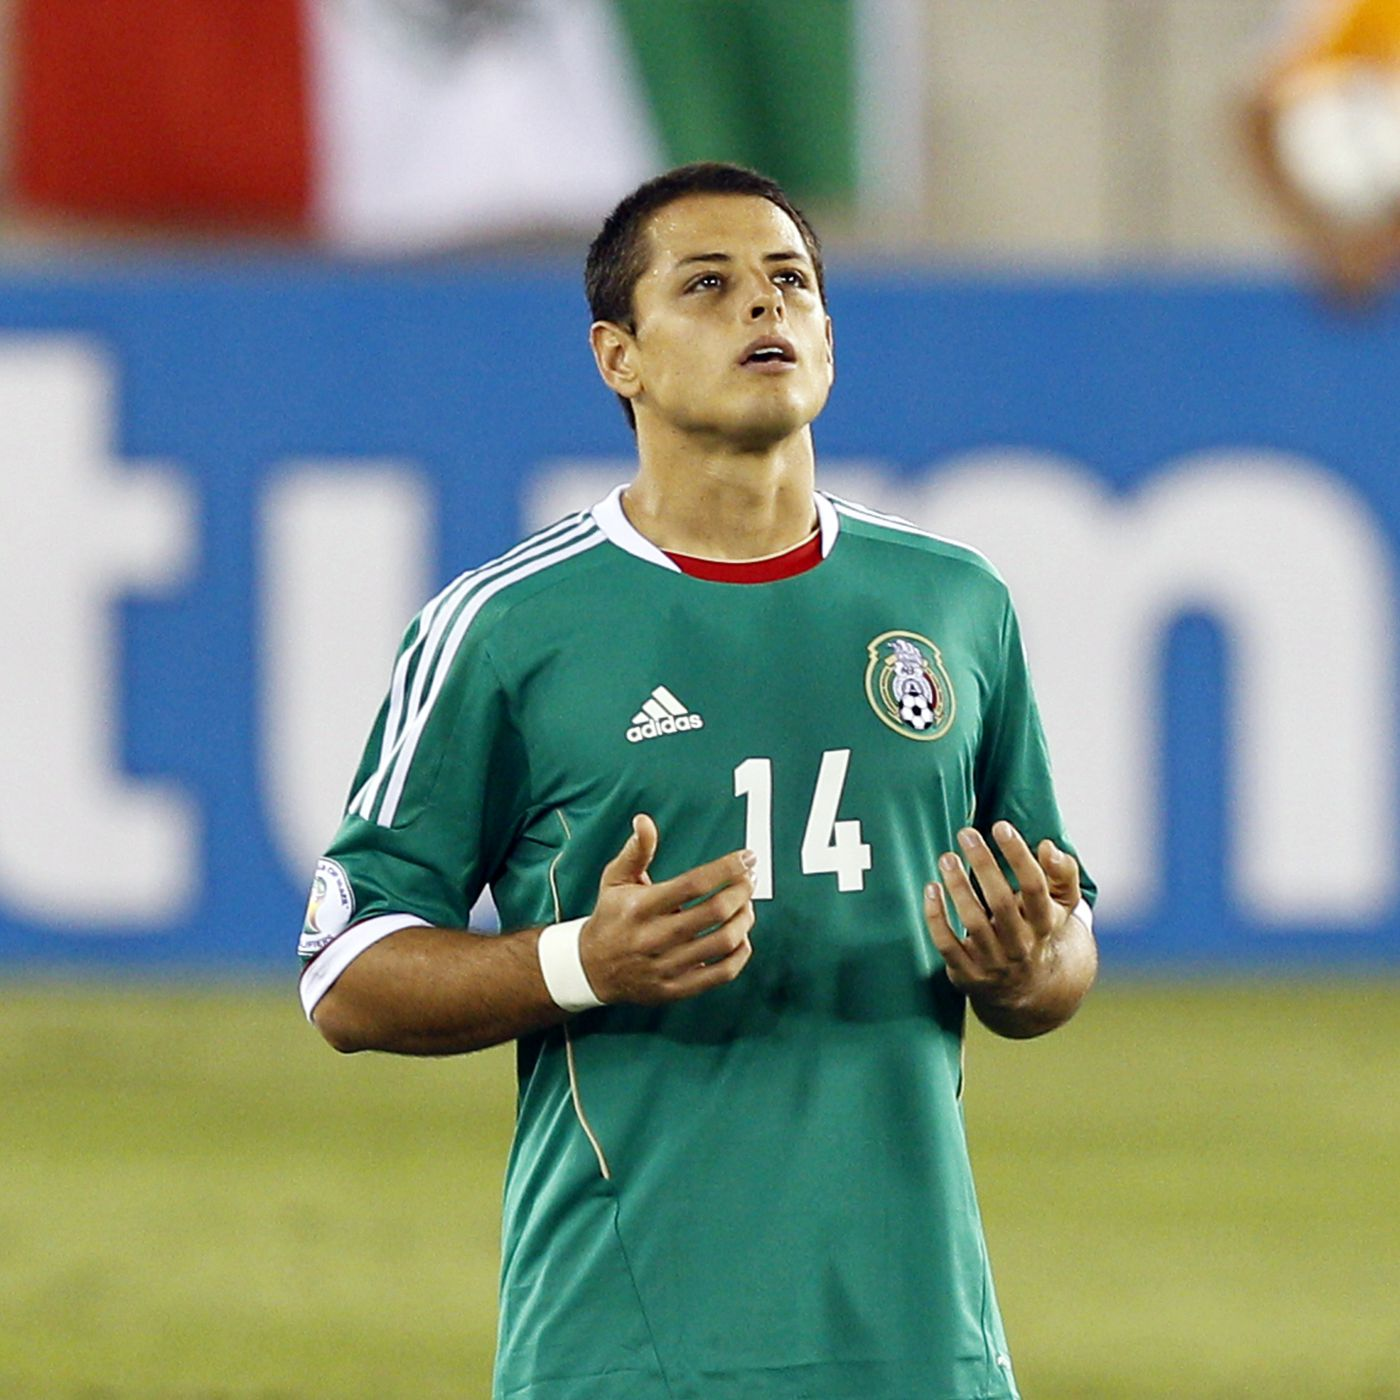 size 40 e97b6 263c1 Real Madrid to sign Chicharito Hernández - Managing Madrid